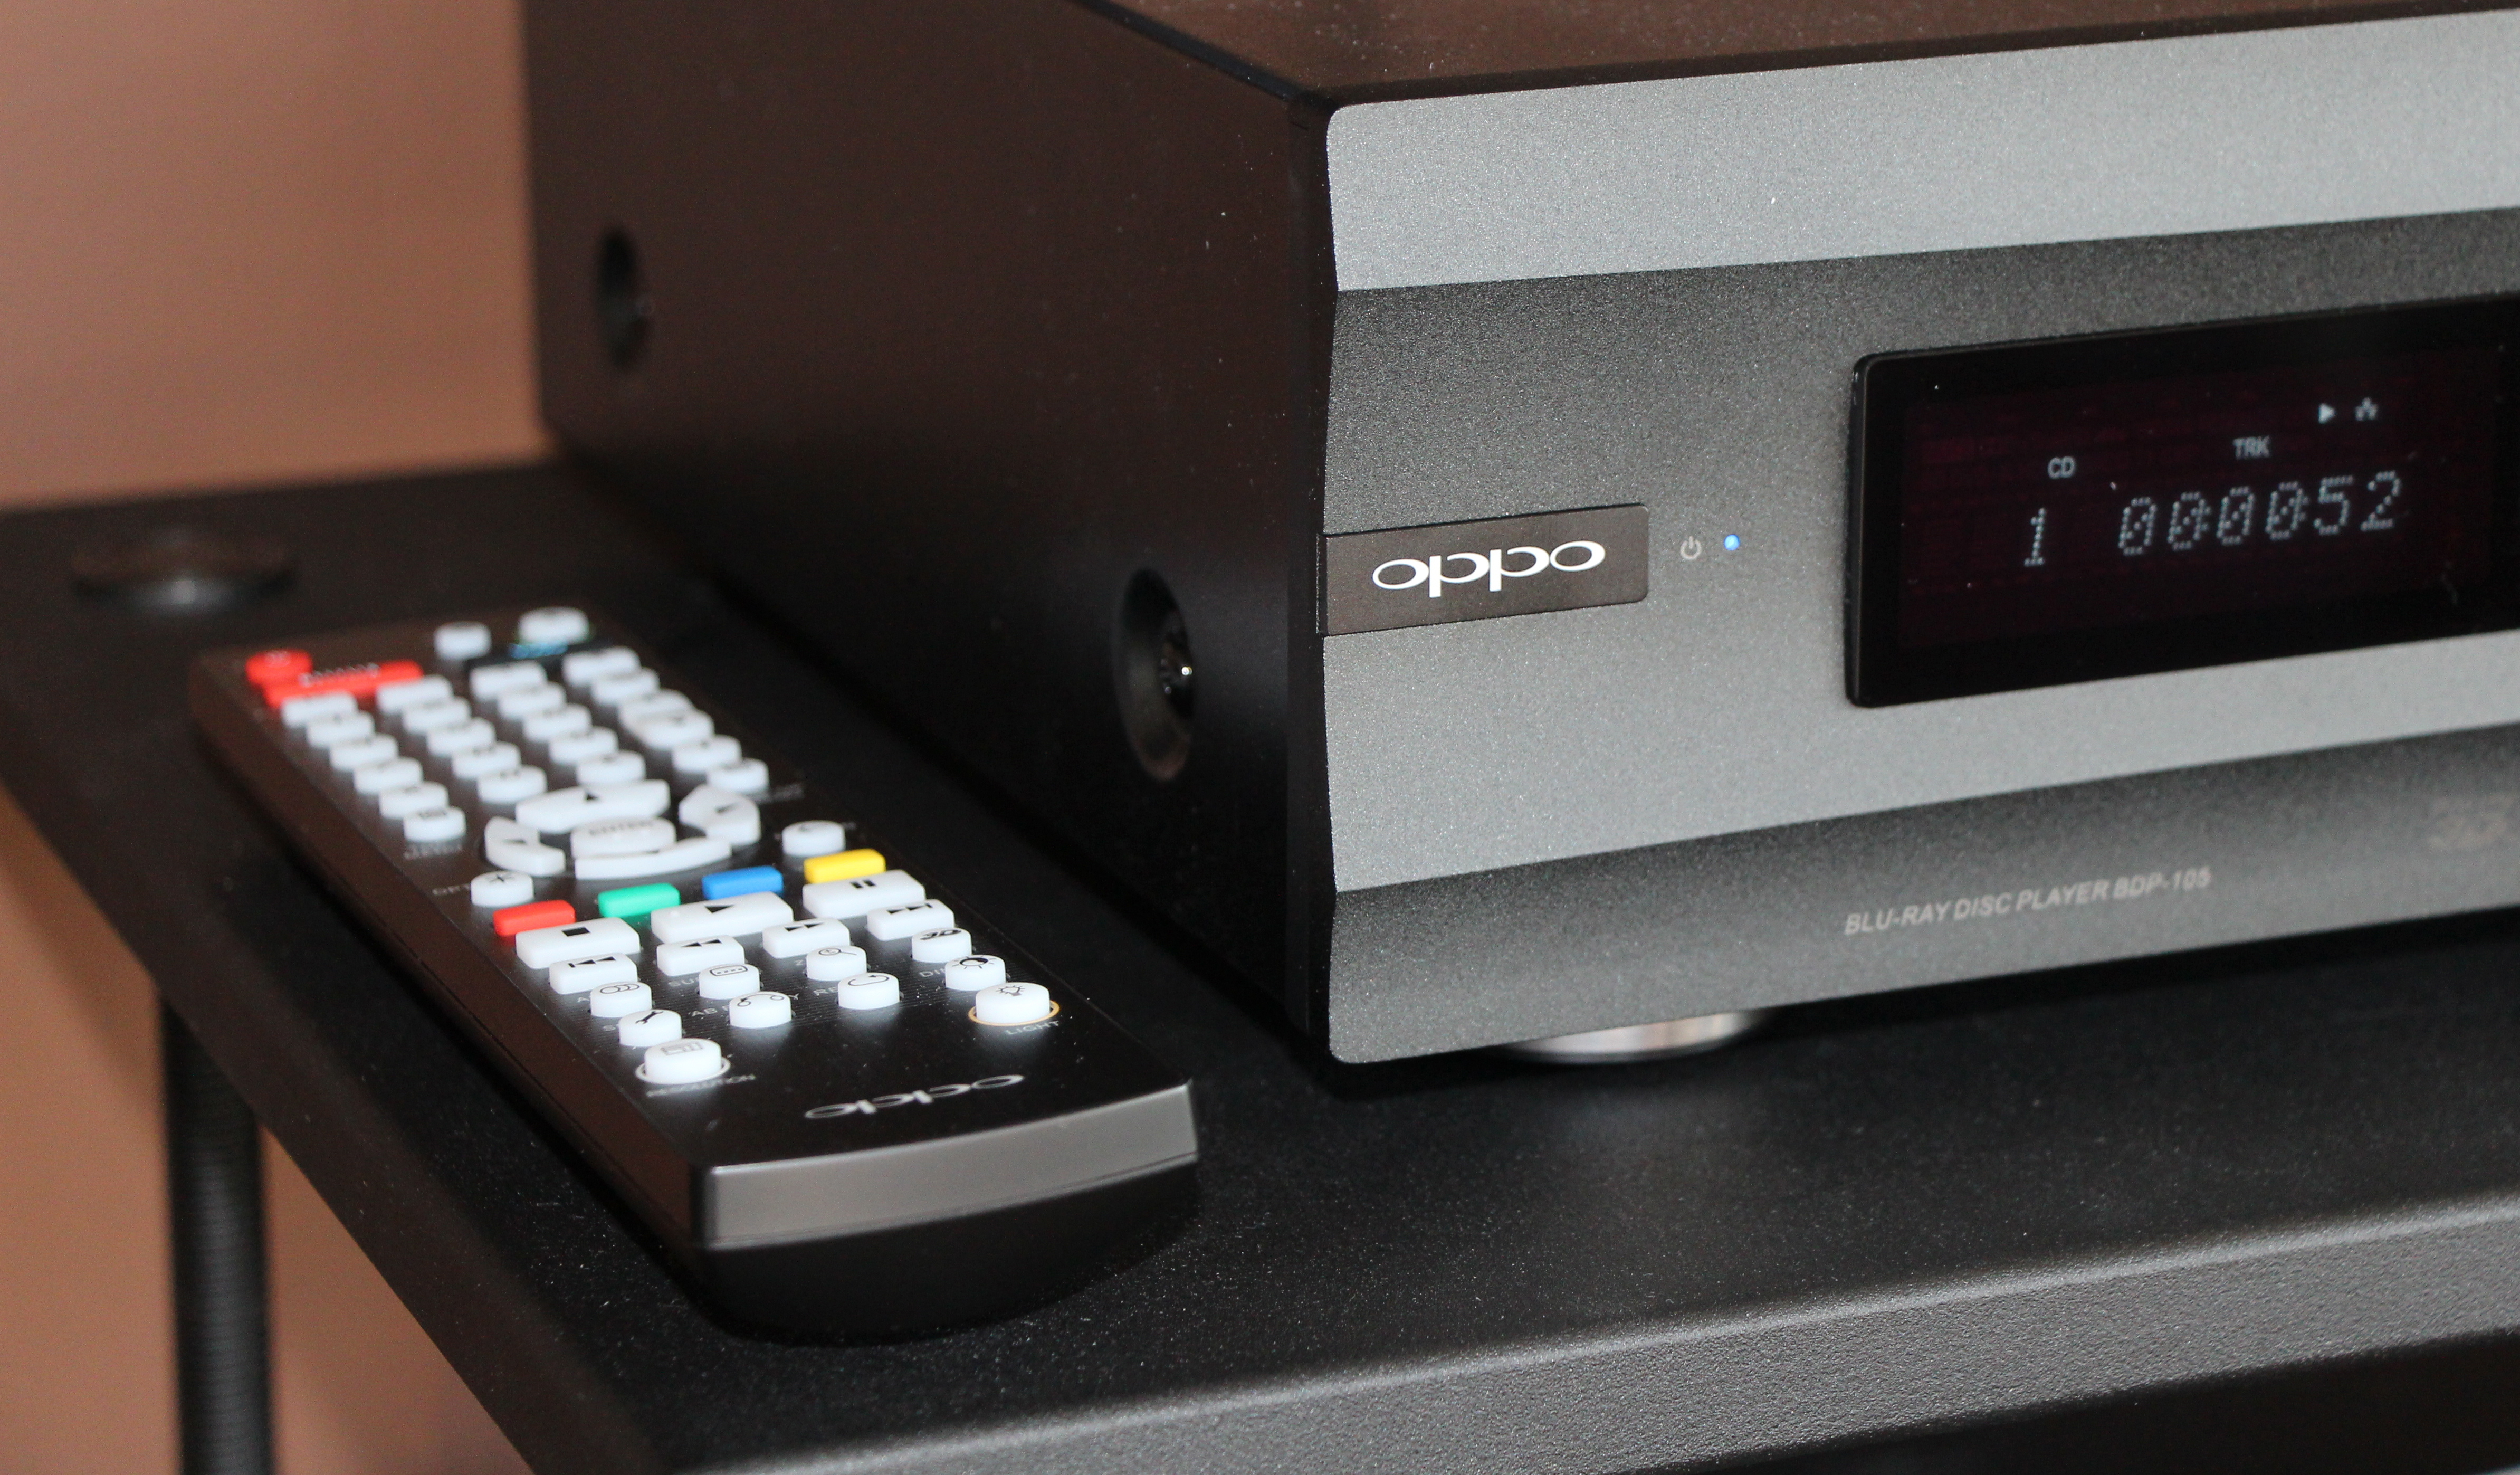 Oppo Bdp 105 Blu Ray Player Review Audiohead